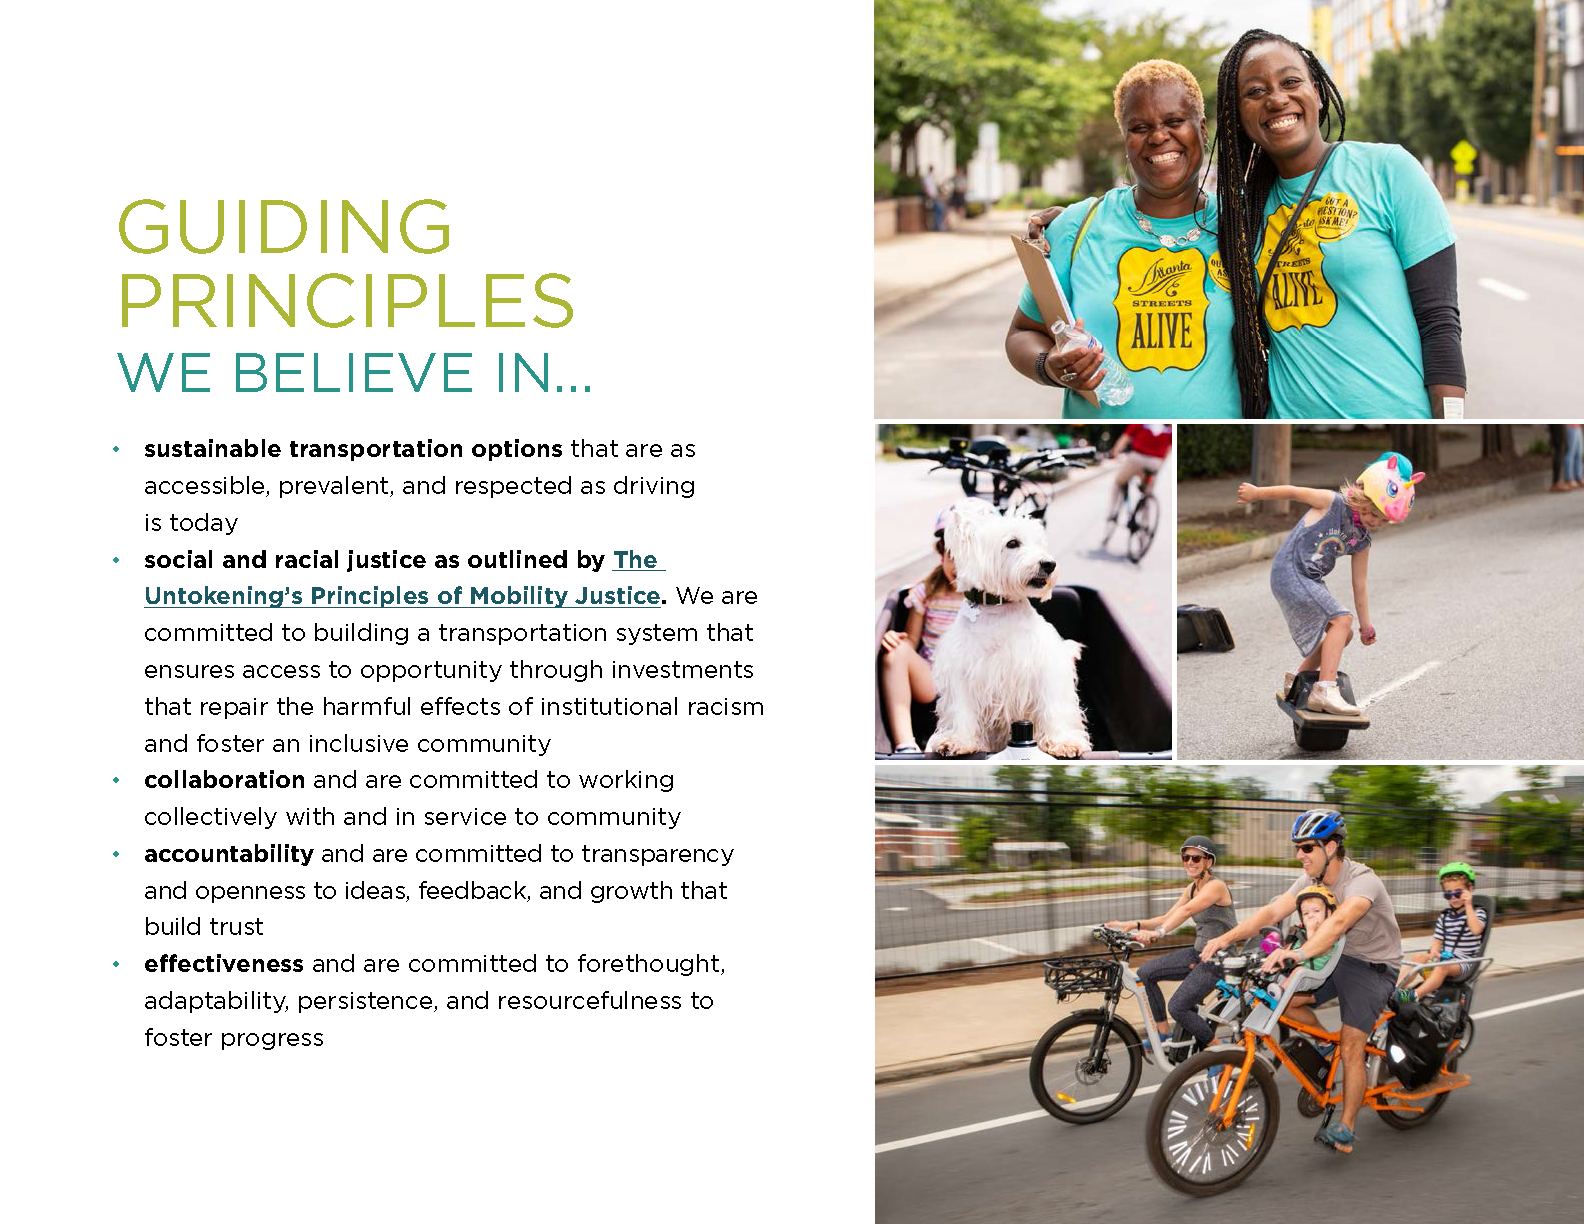 our guiding principles - we believe in: sustainable transportation options that are as  accessible, prevalent, and respected as driving  is today social and racial justice as outlined by The  Untokening's Principles of Mobility Justice. We are  committed to building a transportation system that  ensures access to opportunity through investments  that repair the harmful effects of institutional racism  and foster an inclusive community collaboration and are committed to working  collectively with and in service to community accountability and are committed to transparency  and openness to ideas, feedback, and growth that  build trust effectiveness and are committed to forethought,  adaptability, persistence, and resourcefulness to  foster progress